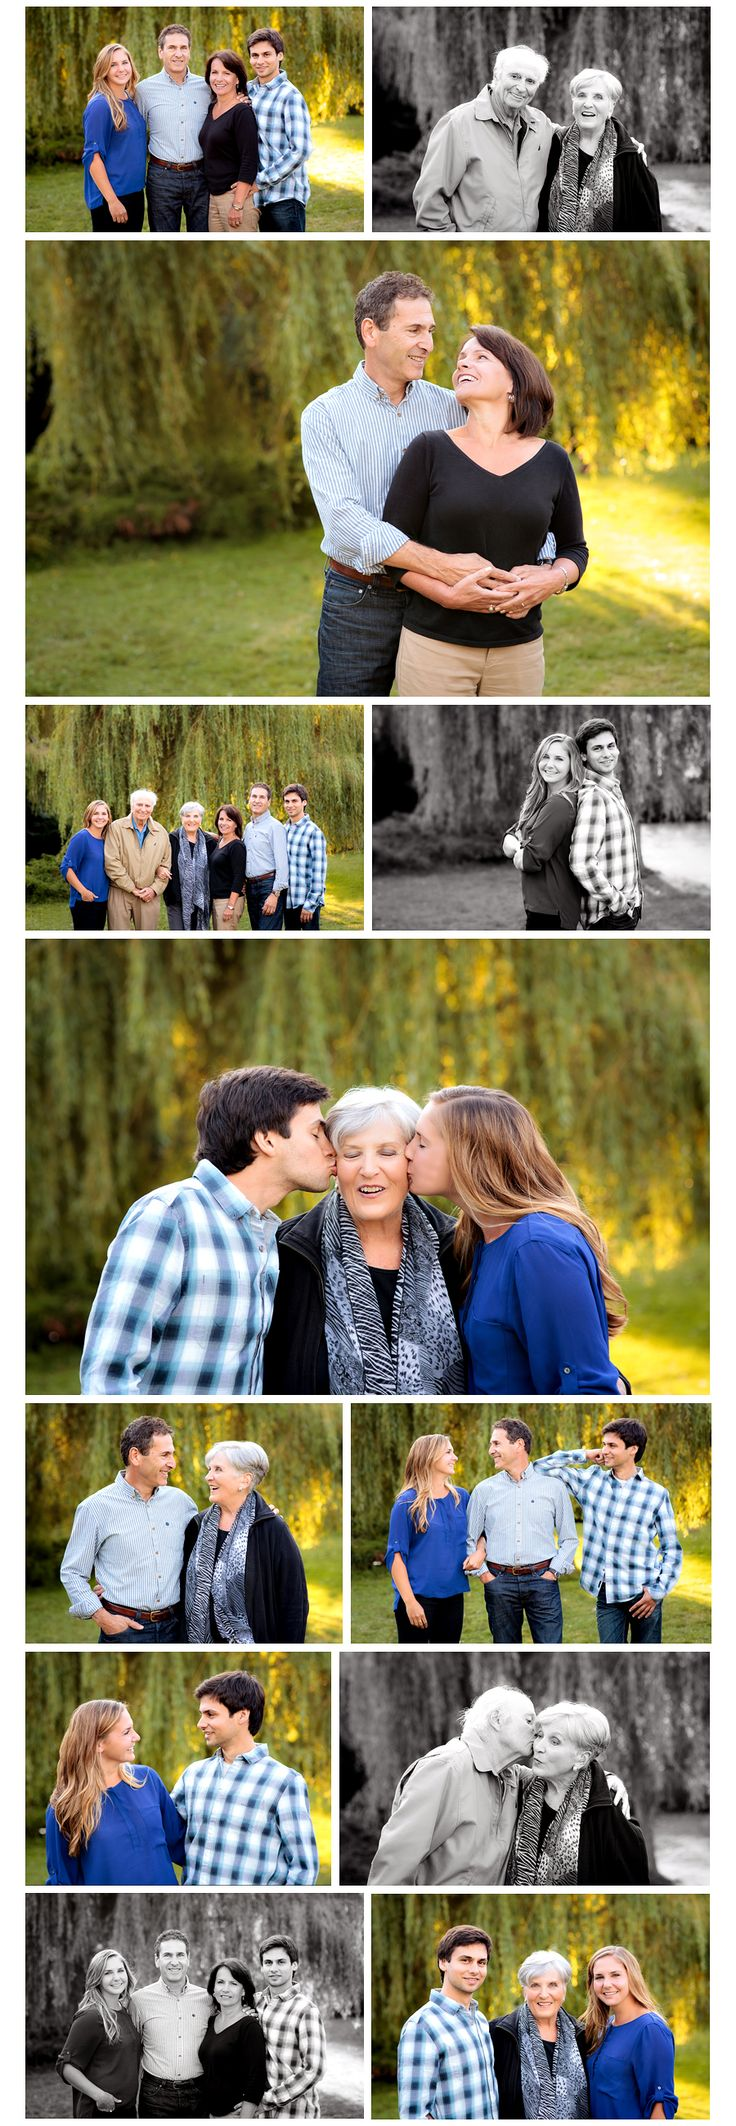 Extended Family Love {Family Photography   Victoria, B.C.} >> Nicole Israel Photography